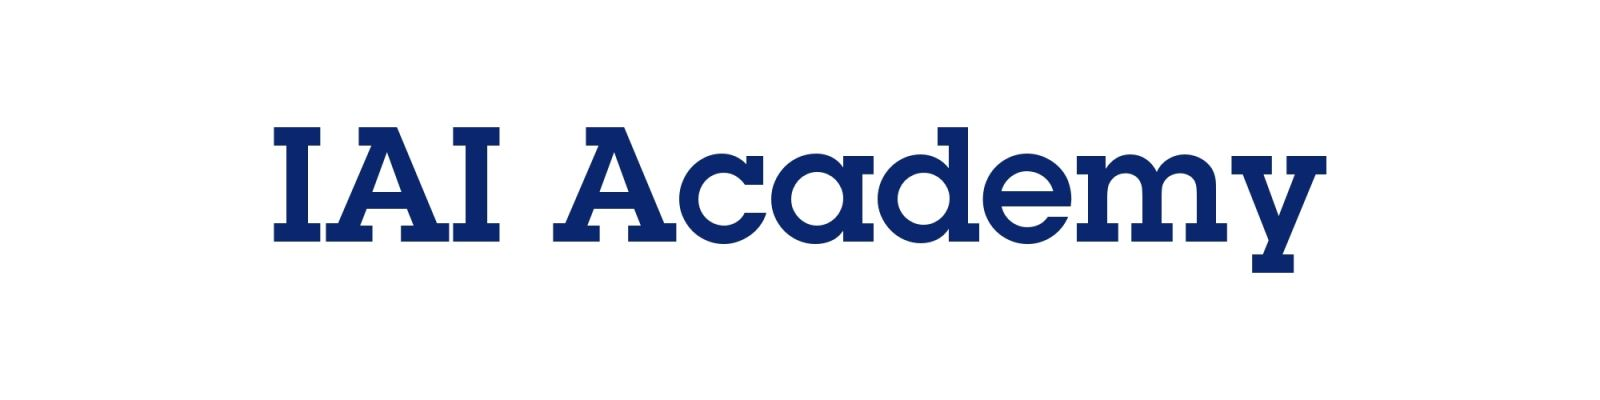 IAI Academy online courses and MOOCs - student reviews | CourseTalk